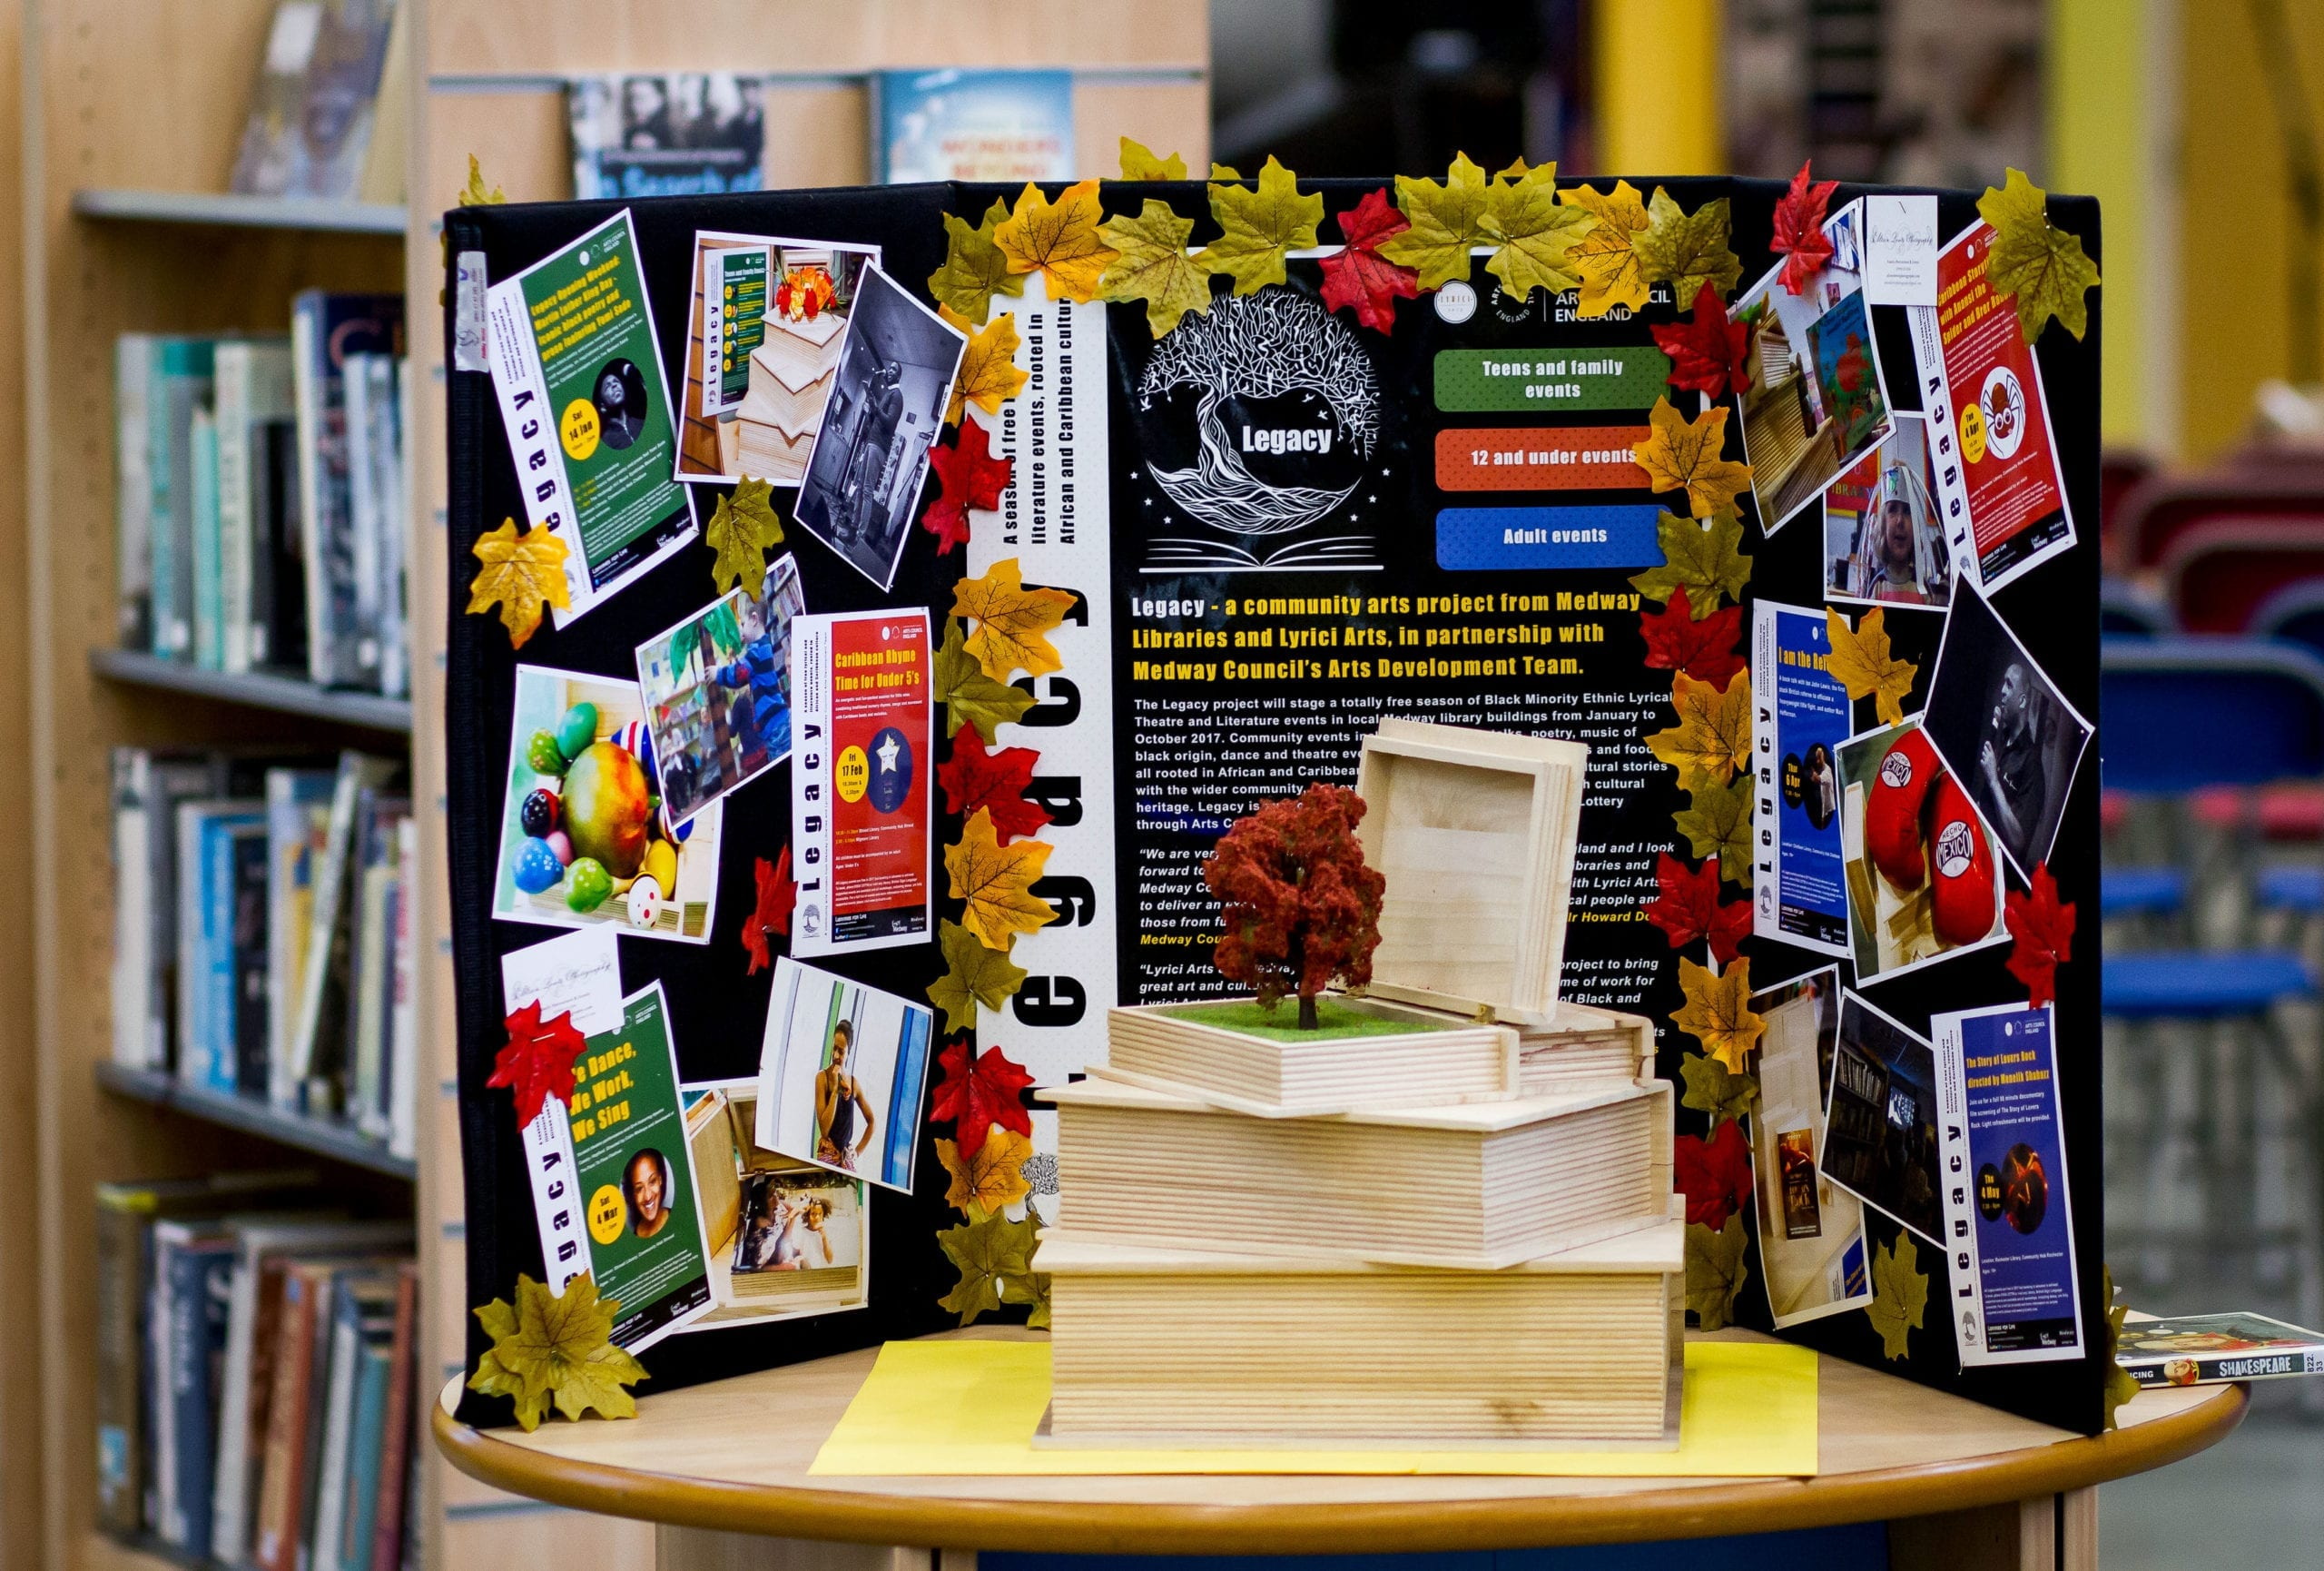 A Legacy display at a library